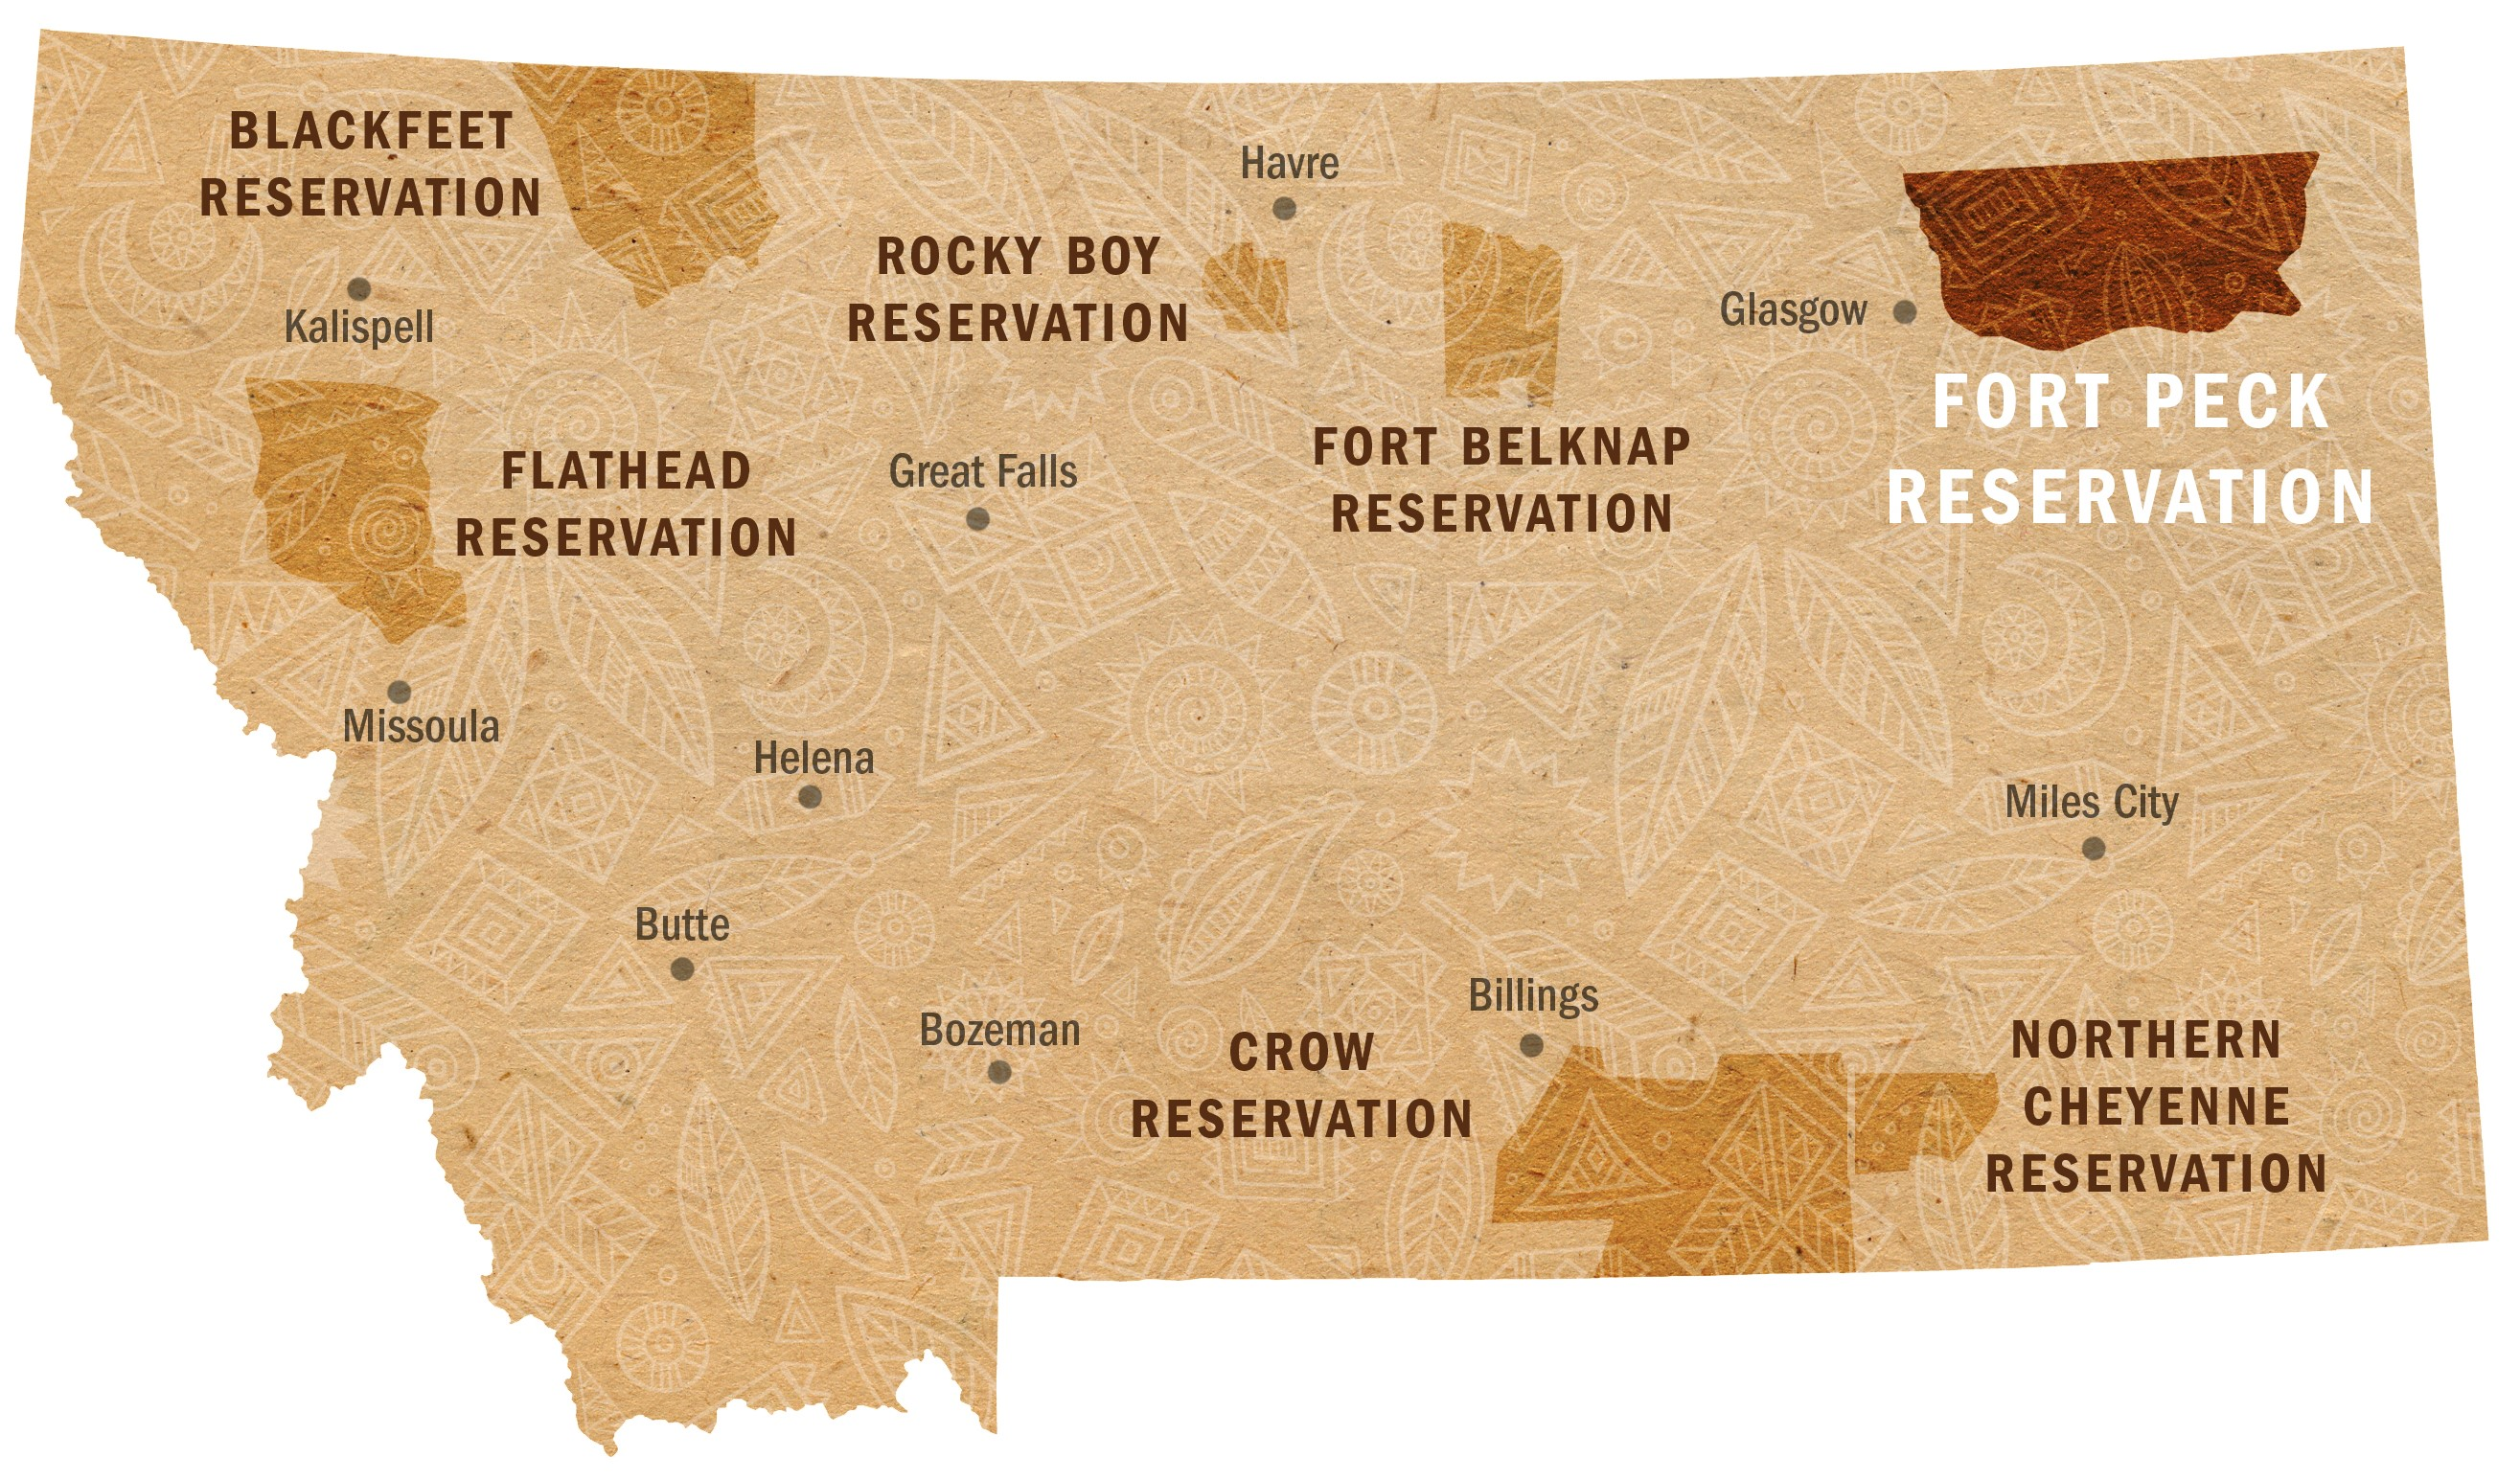 Fort Peck Reservation